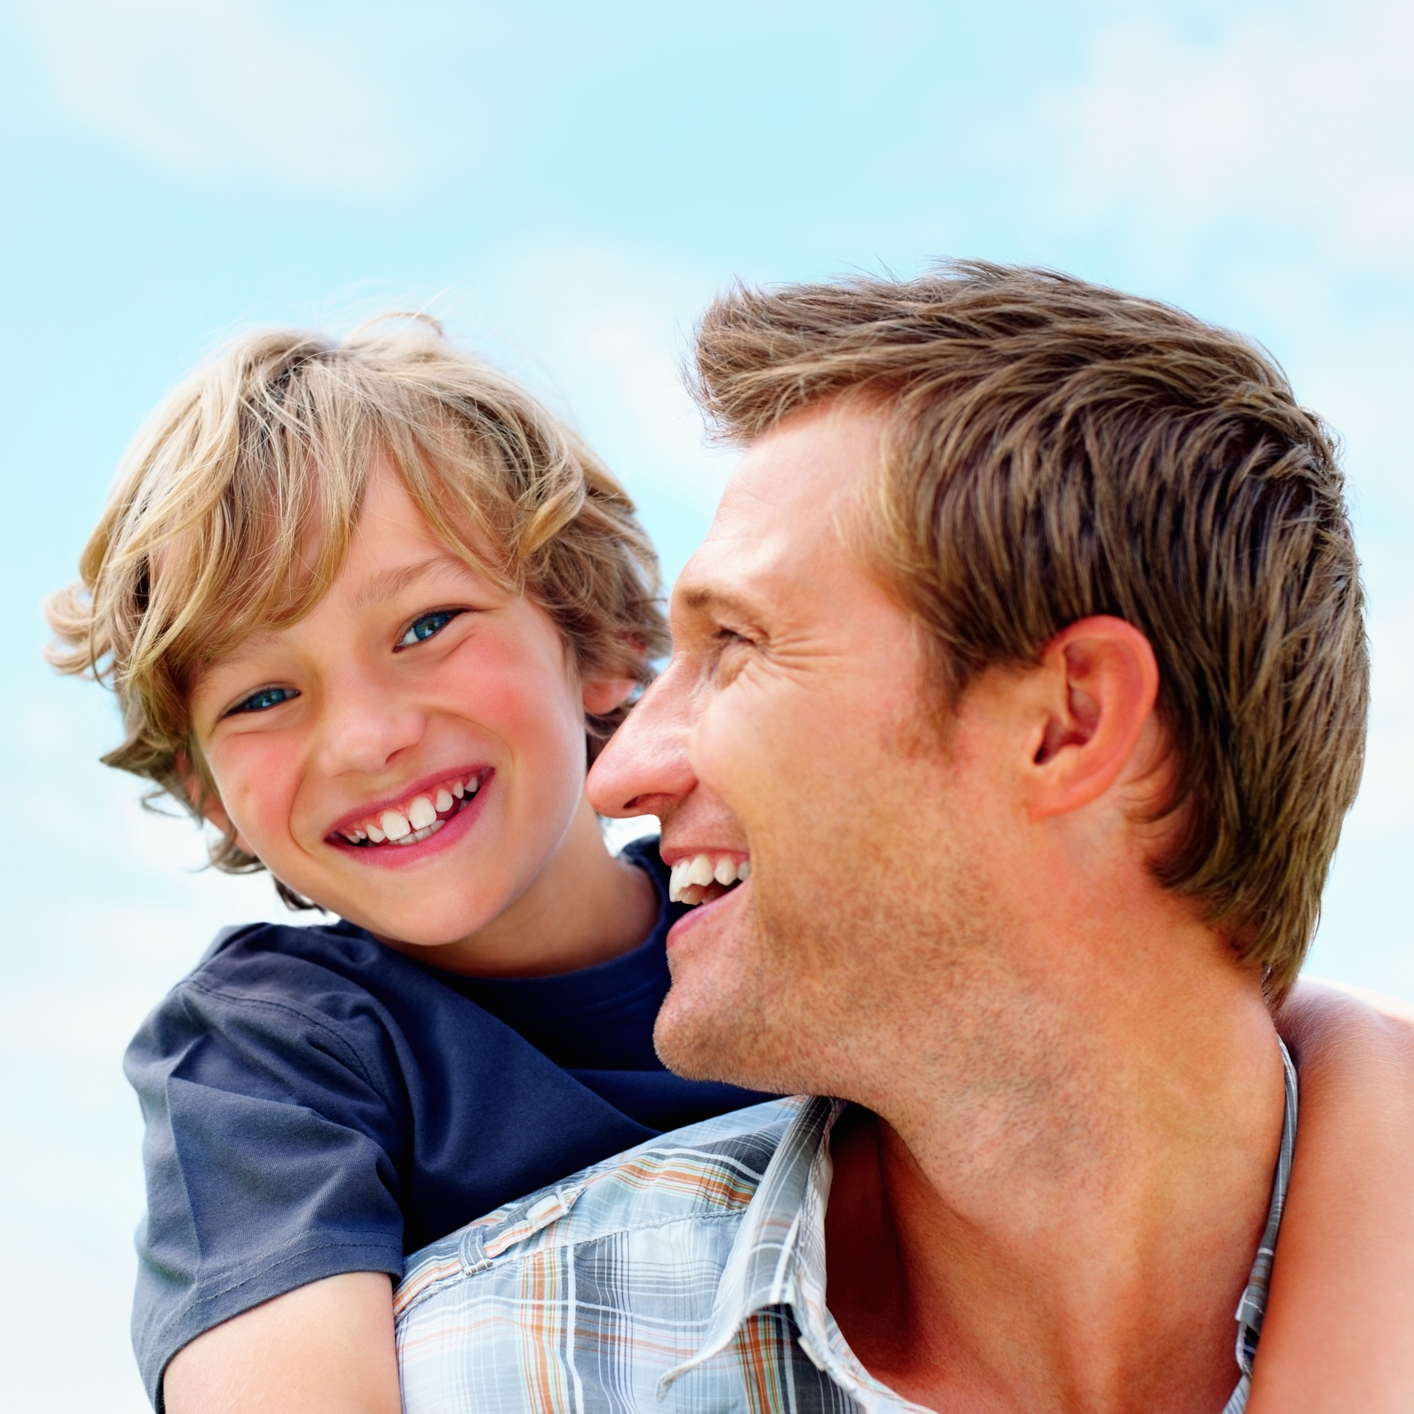 Cheerful-mature-man-carrying-his-son-on-back-157685733_2122x1415.jpeg